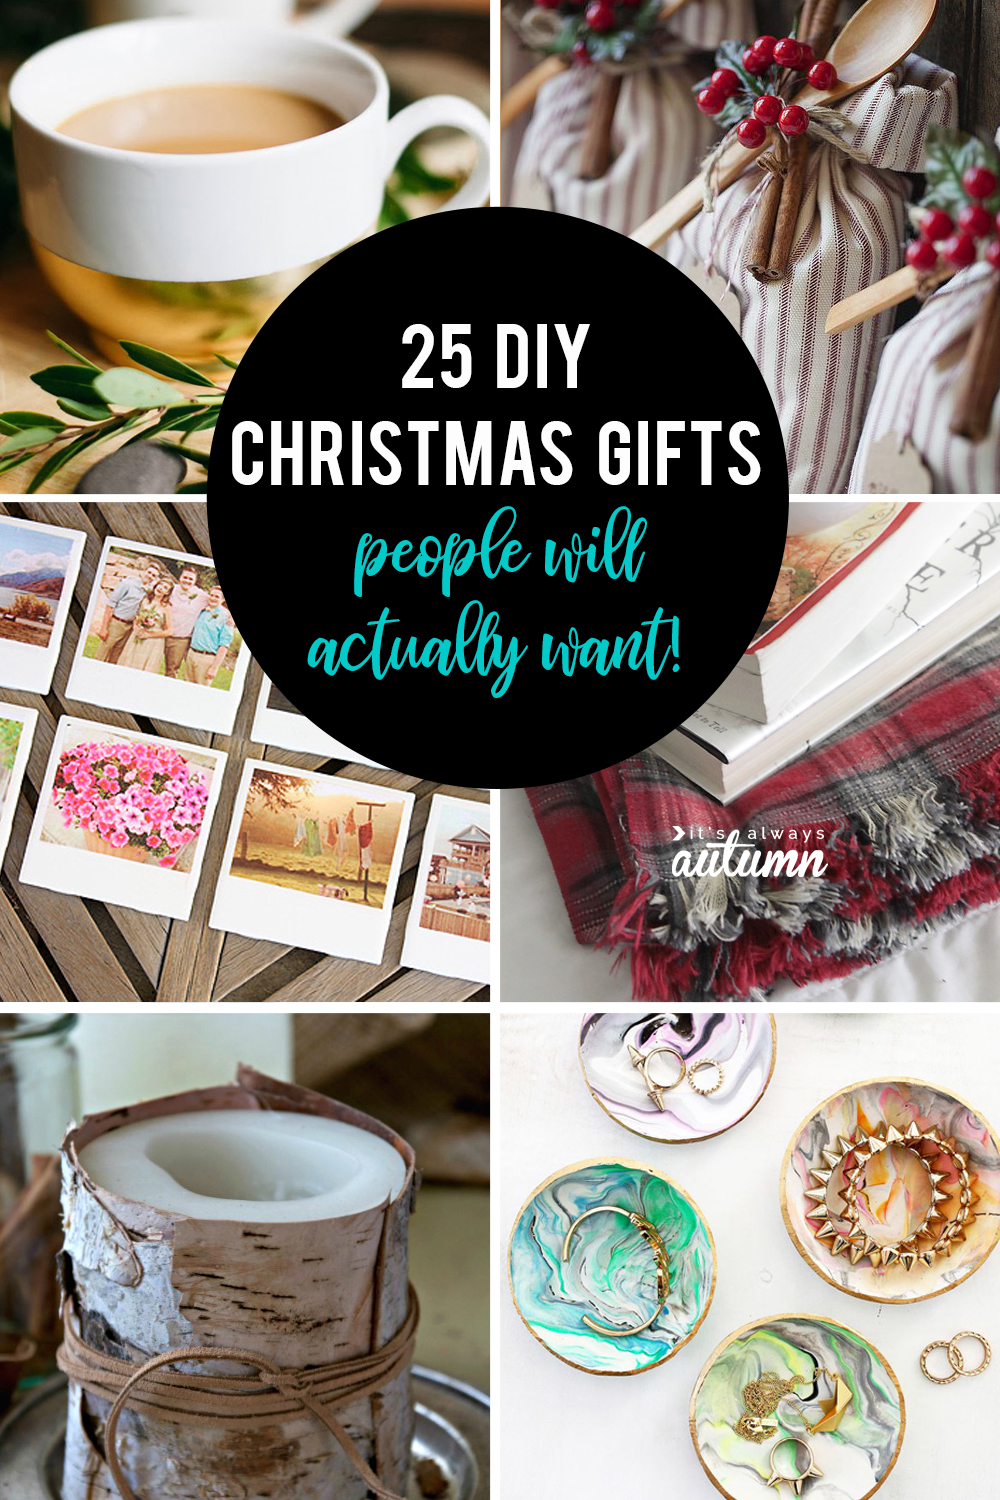 25 amazing DIY gifts people will actually want! - It's ...Handmade Christmas Gifts